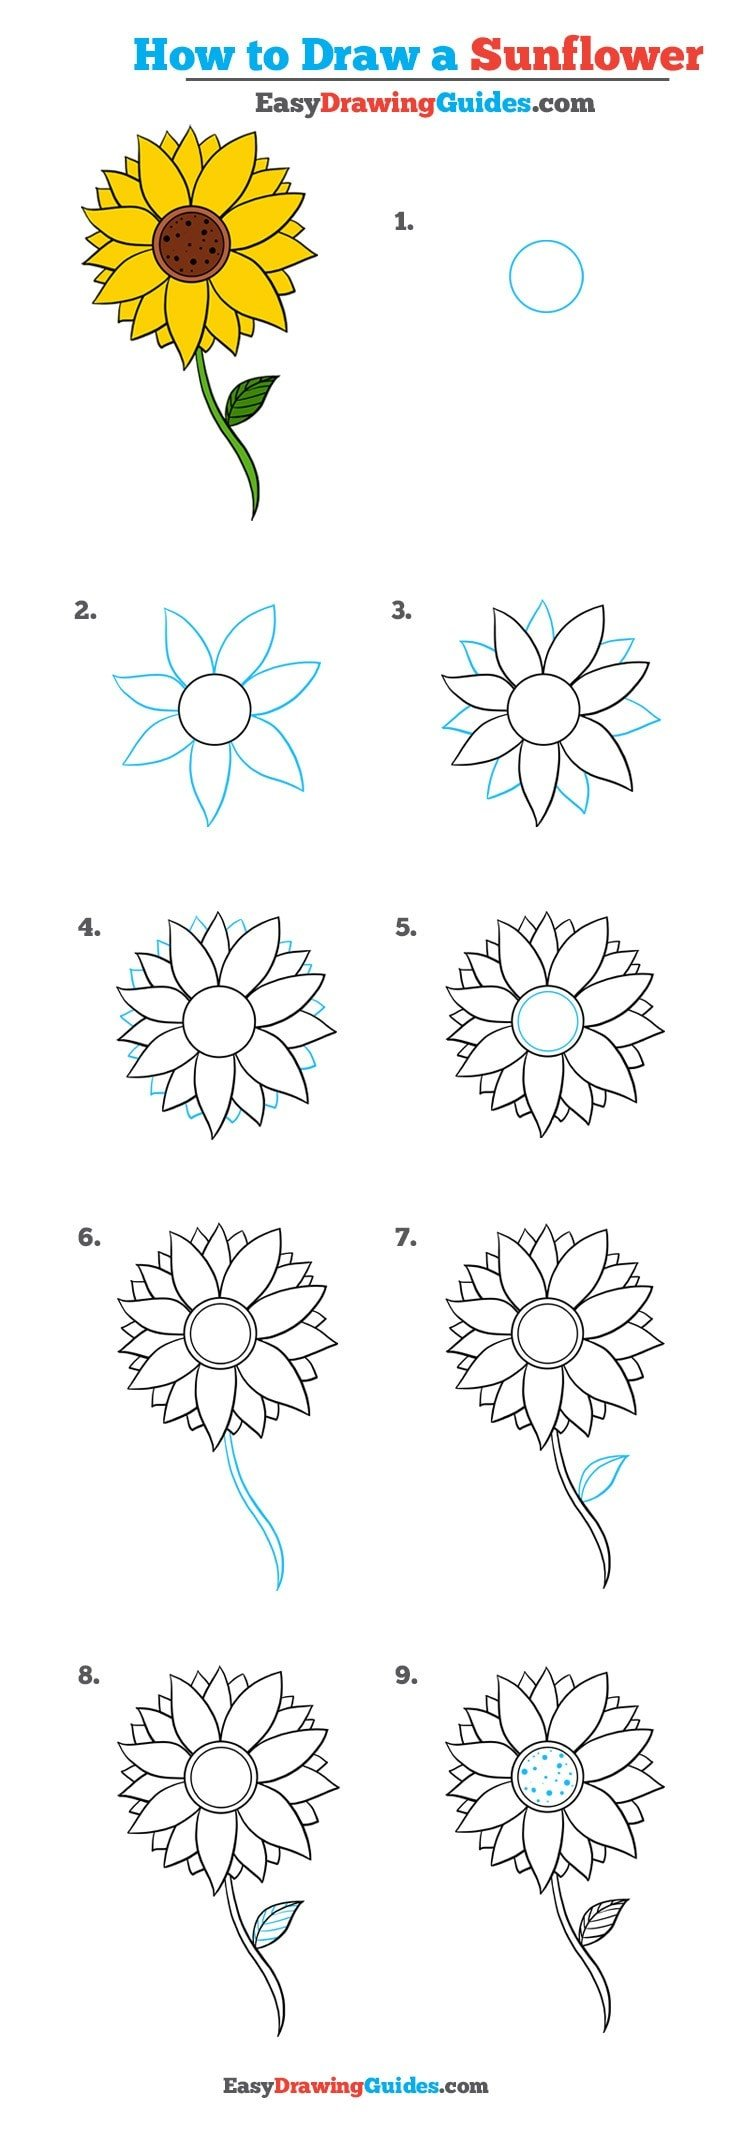 How to Draw a Sunflower: Really Easy Drawing Tutorial